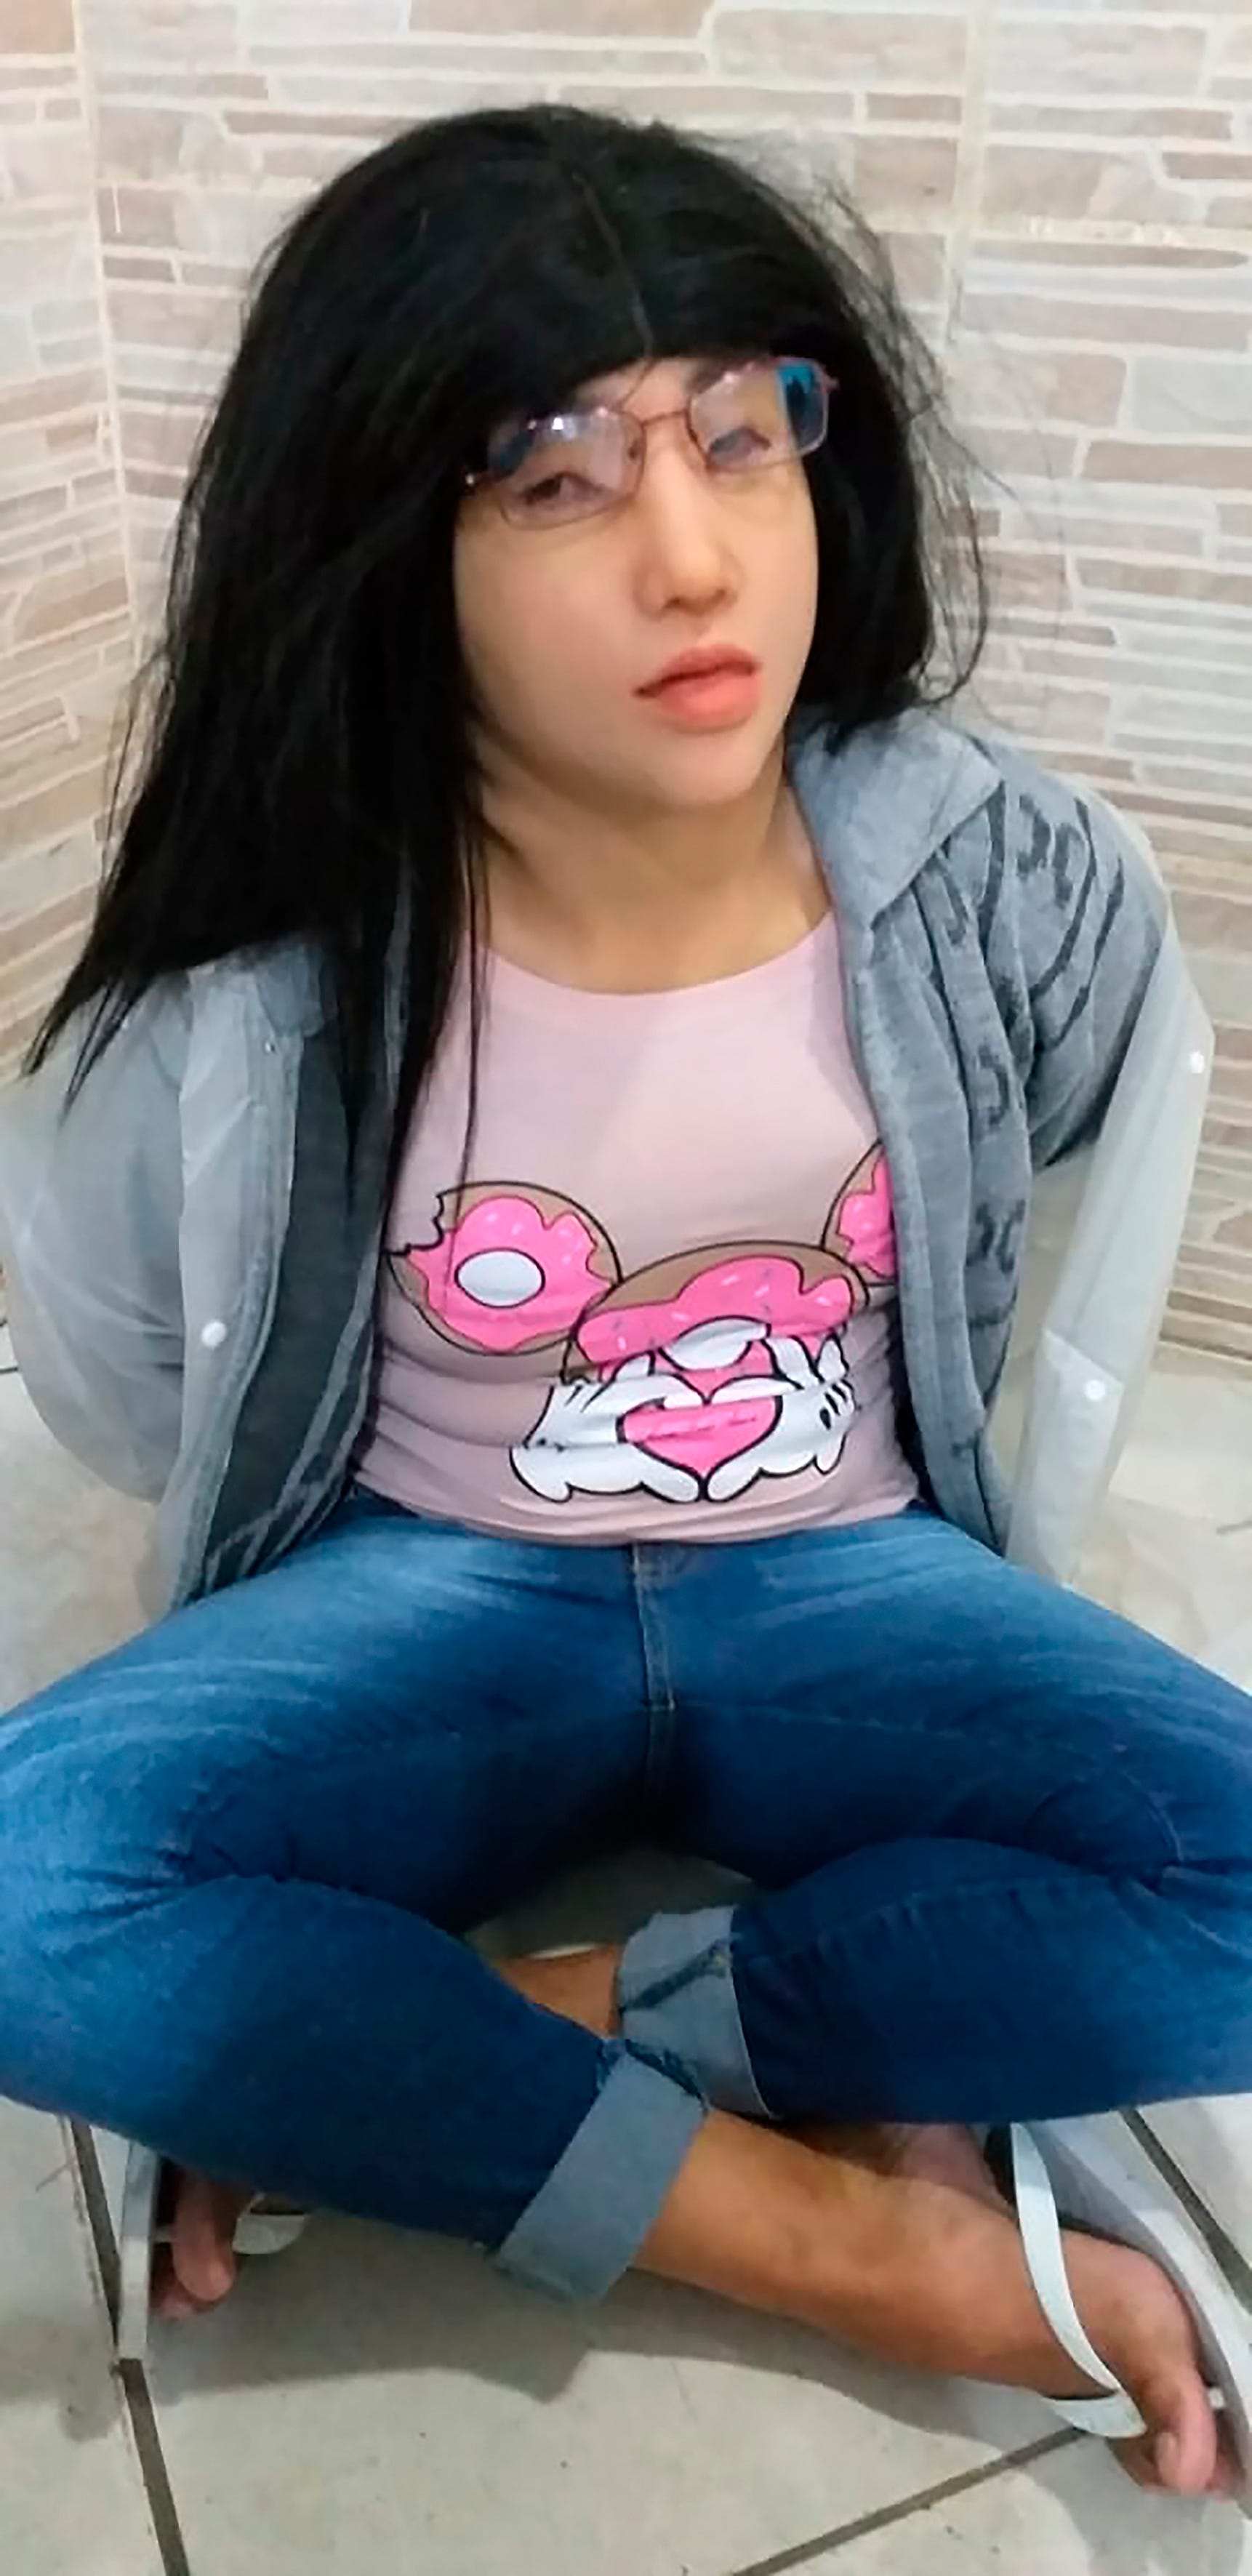 A Brazilian gang leader dressed up as his 19-year-old daughter to escape from prison. It didn't work